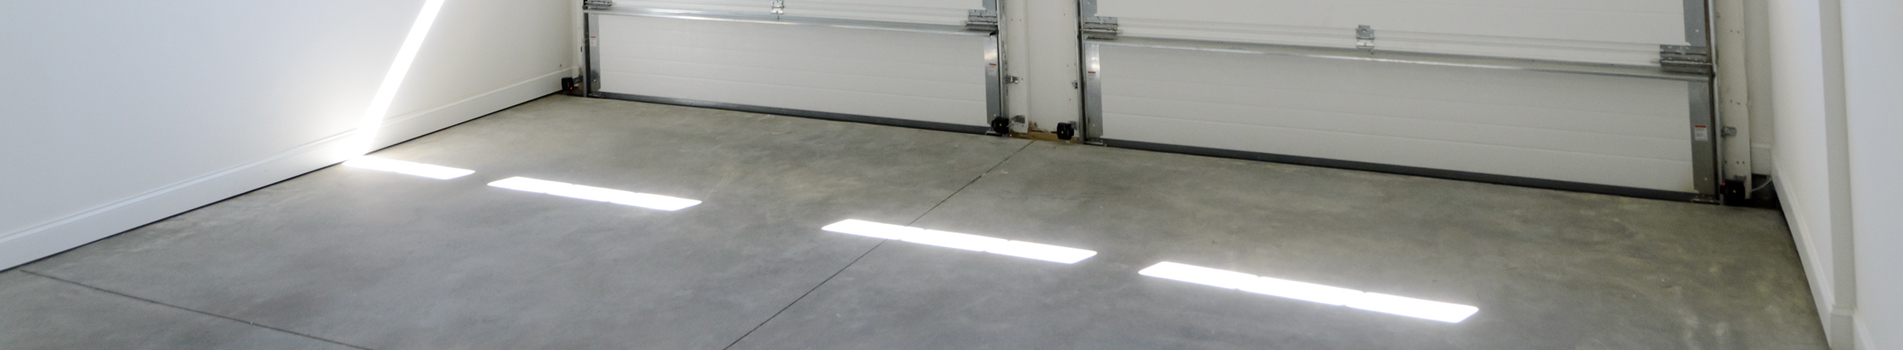 Concrete Lifting and Leveling Garage Floors